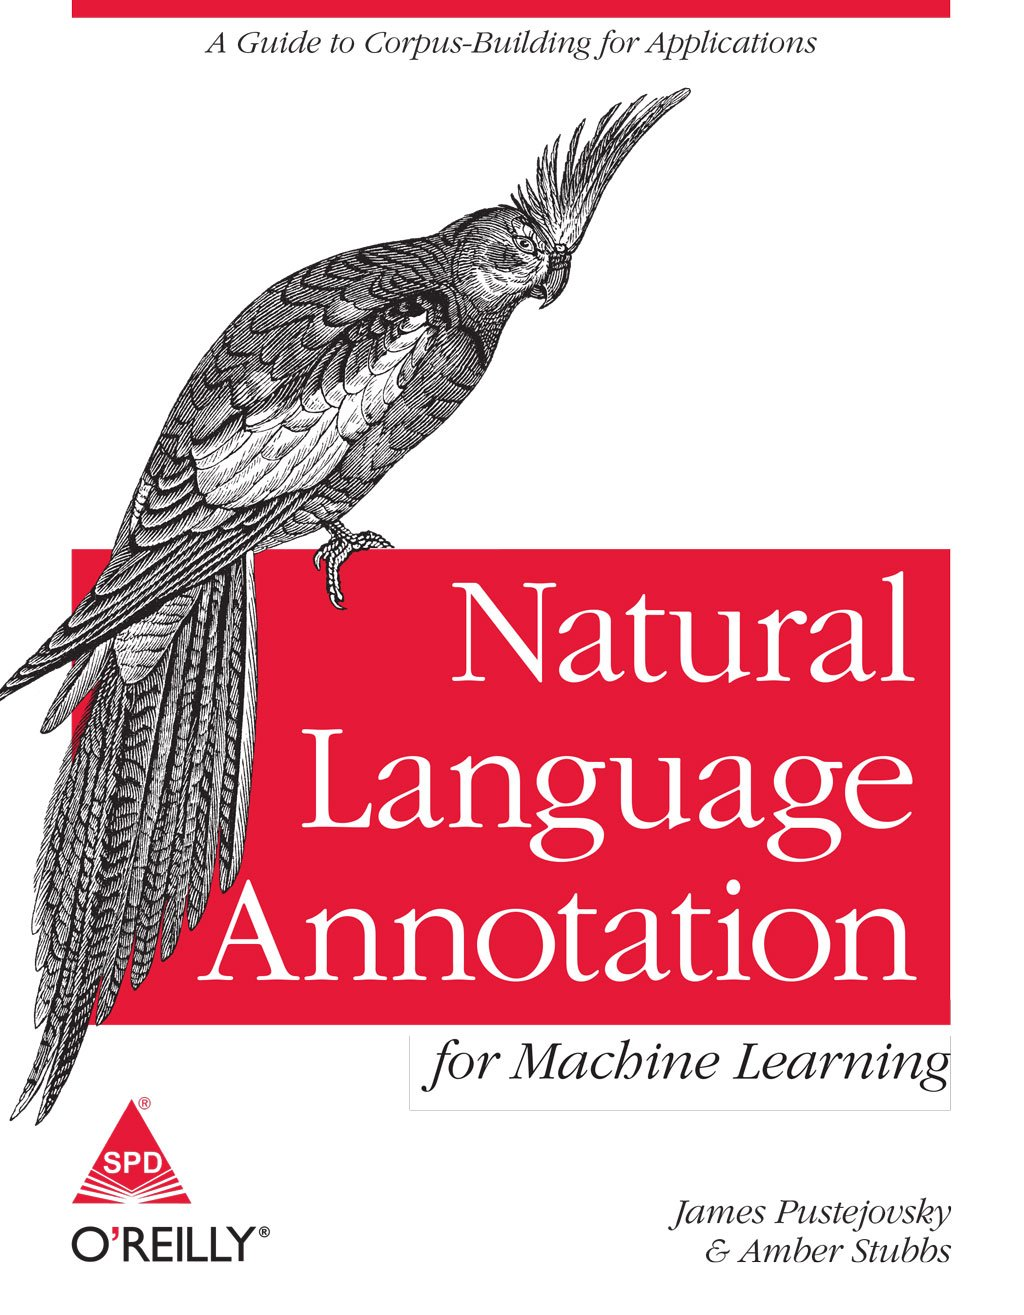 Natural Language Annotation - For Machine Learning